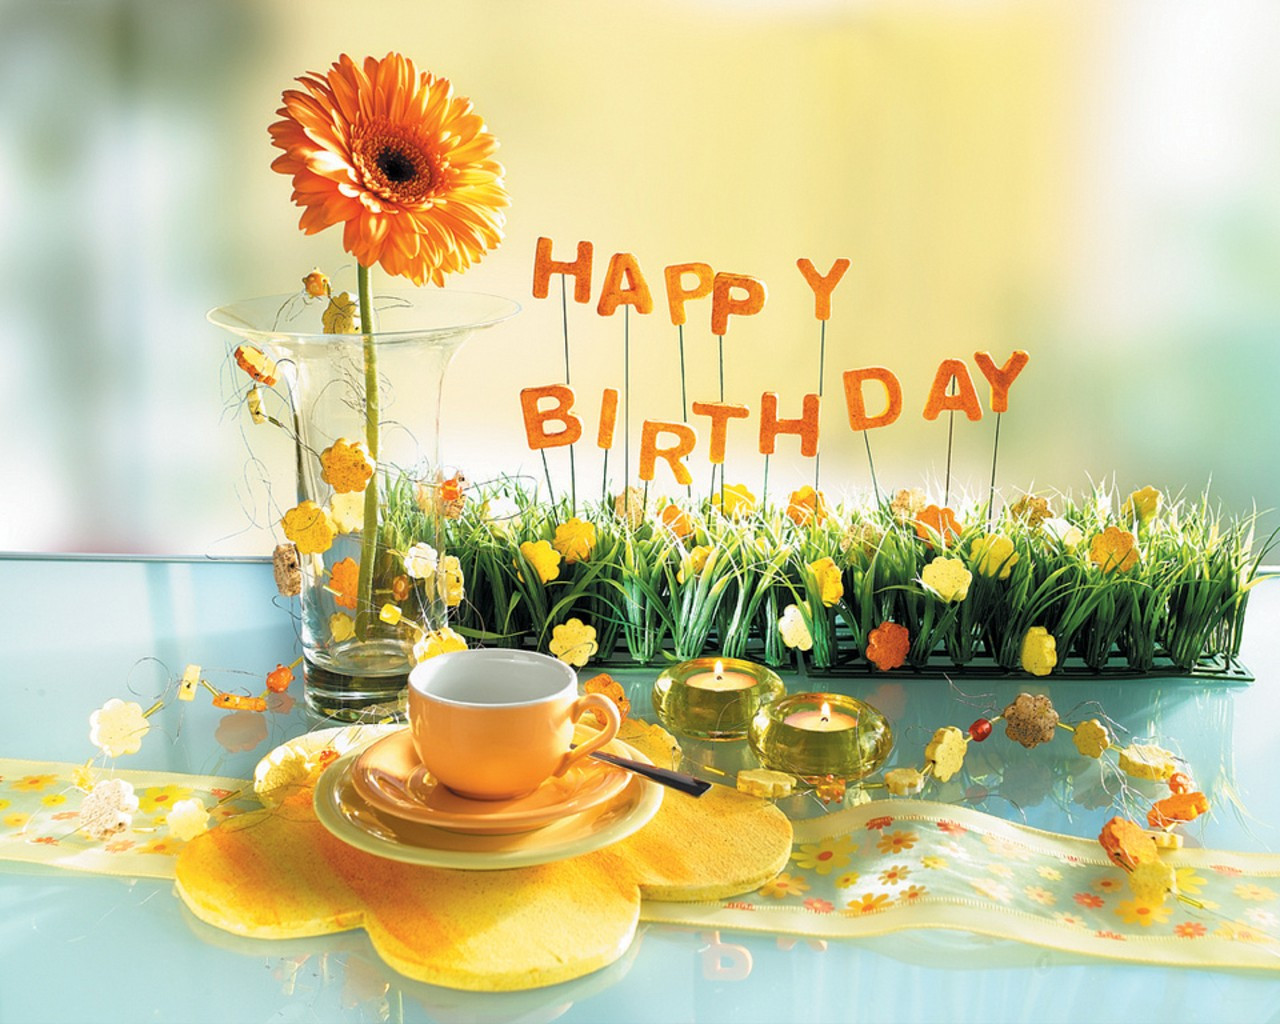 Best ideas about Happy Birthday Wishes For Her . Save or Pin Books Now.